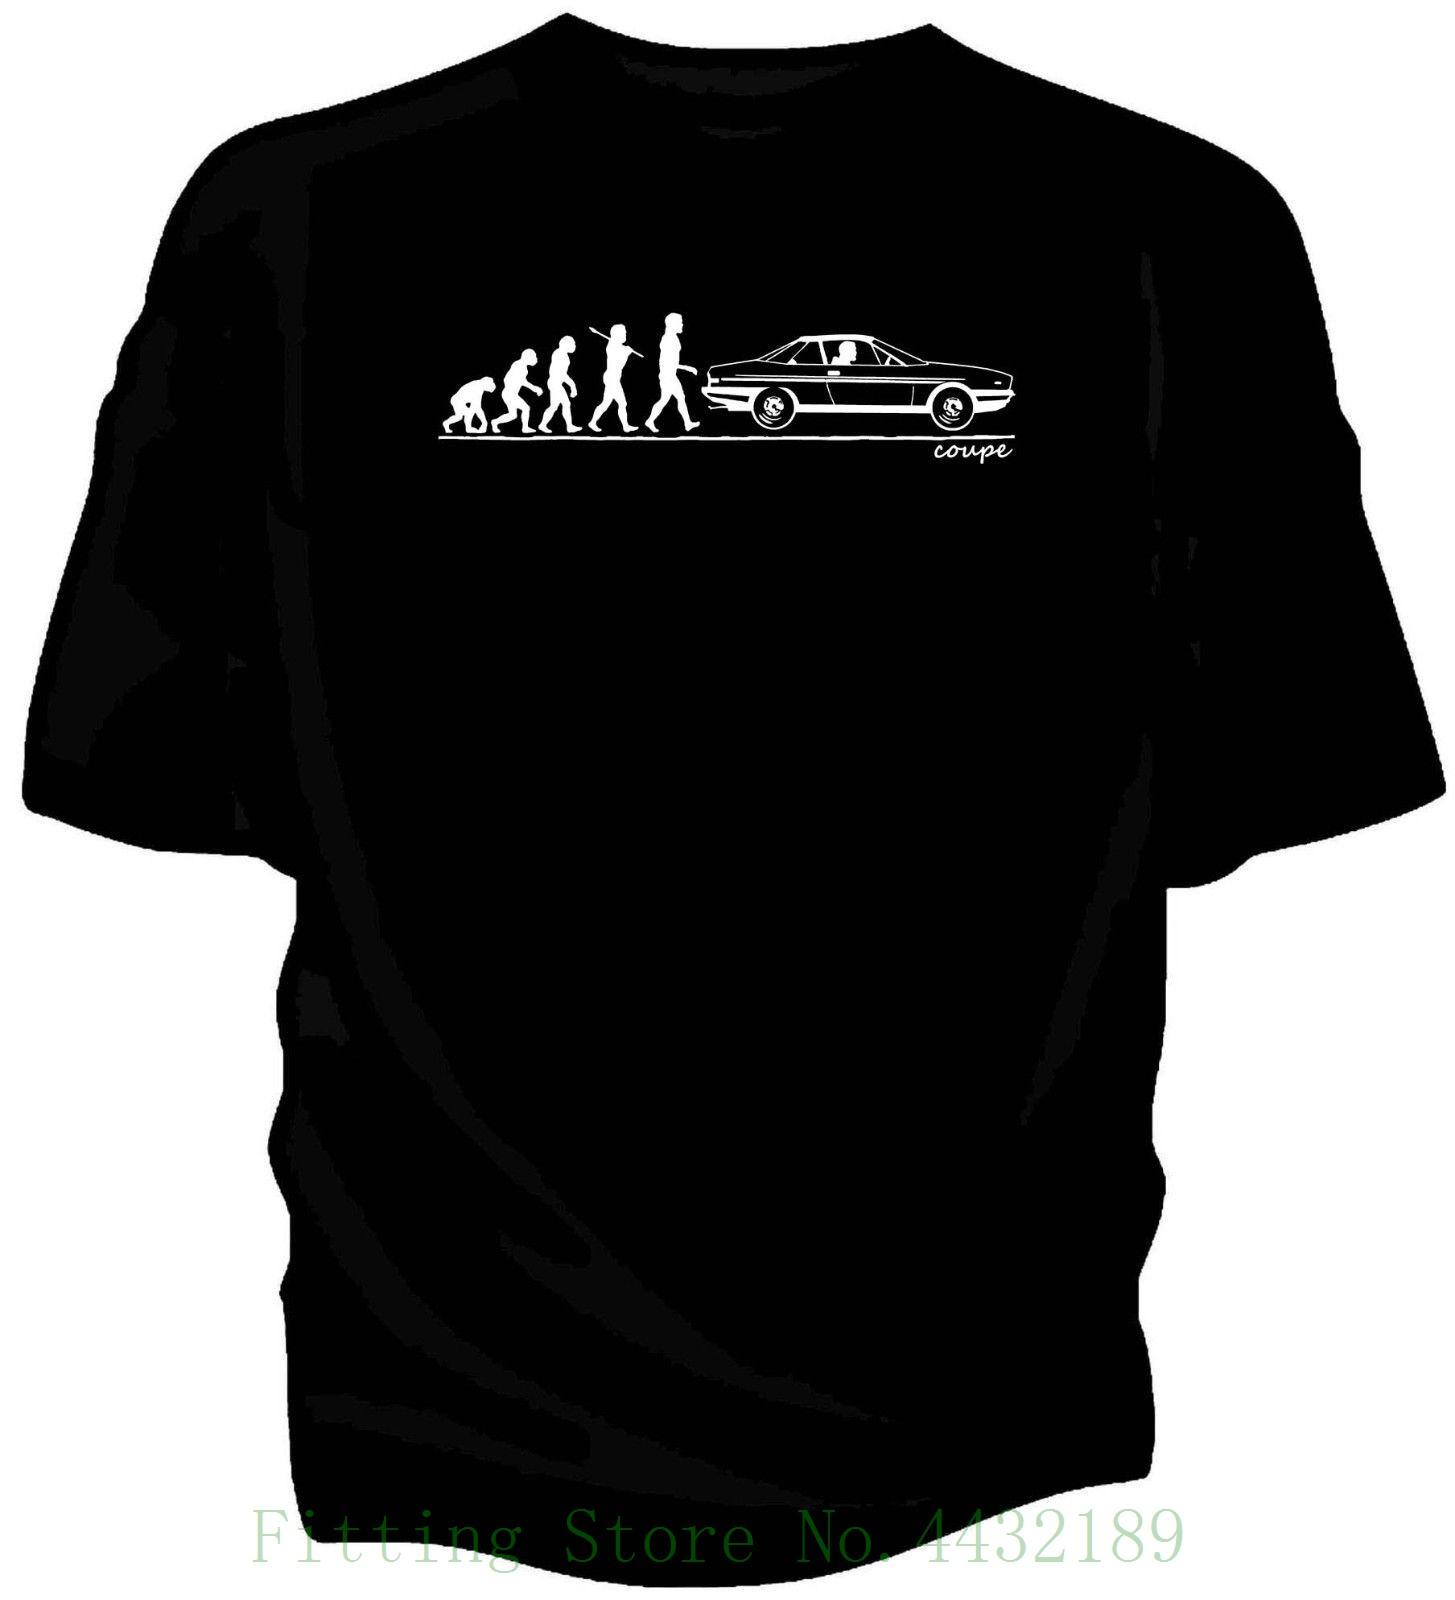 Evolution Of Man , Lancia Gamma Coupe 1976 Classic Car T Shirt. Men's T shirts Short Sleeve O neck Cotton